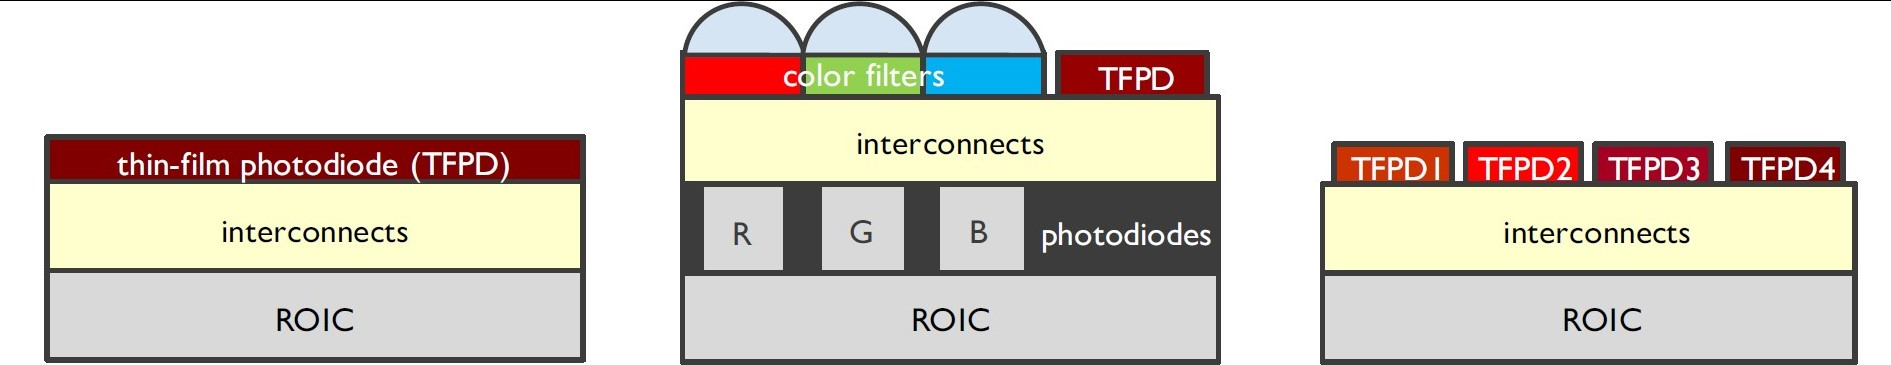 Schematic illustration of the design choices targeting imec's progressive application roadmap. Left: basic IR-detector; Middle: IR detection integrated in visible-light imager; Right: multispectral IR detection thanks to tunable TFPD layers.